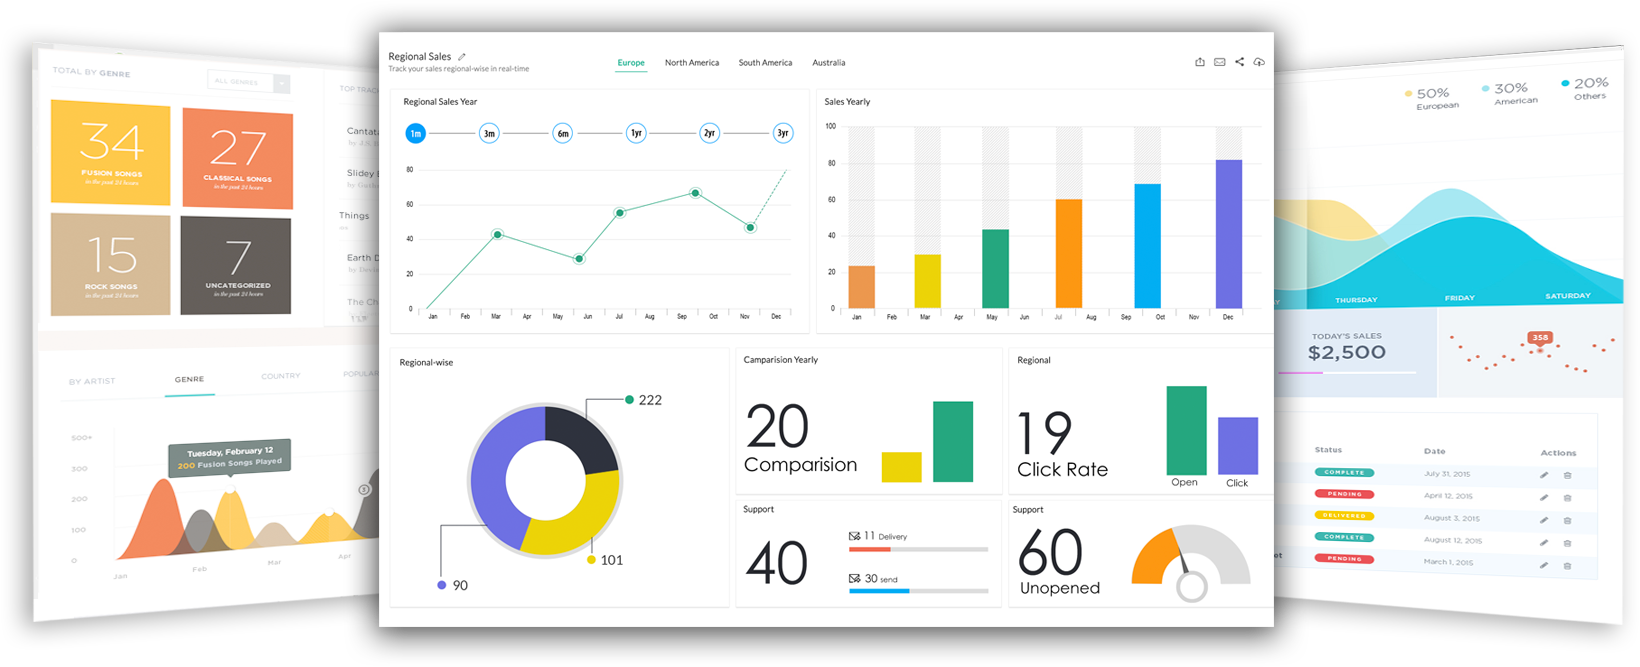 Advanced Analytics solution for deeper insight into your IT